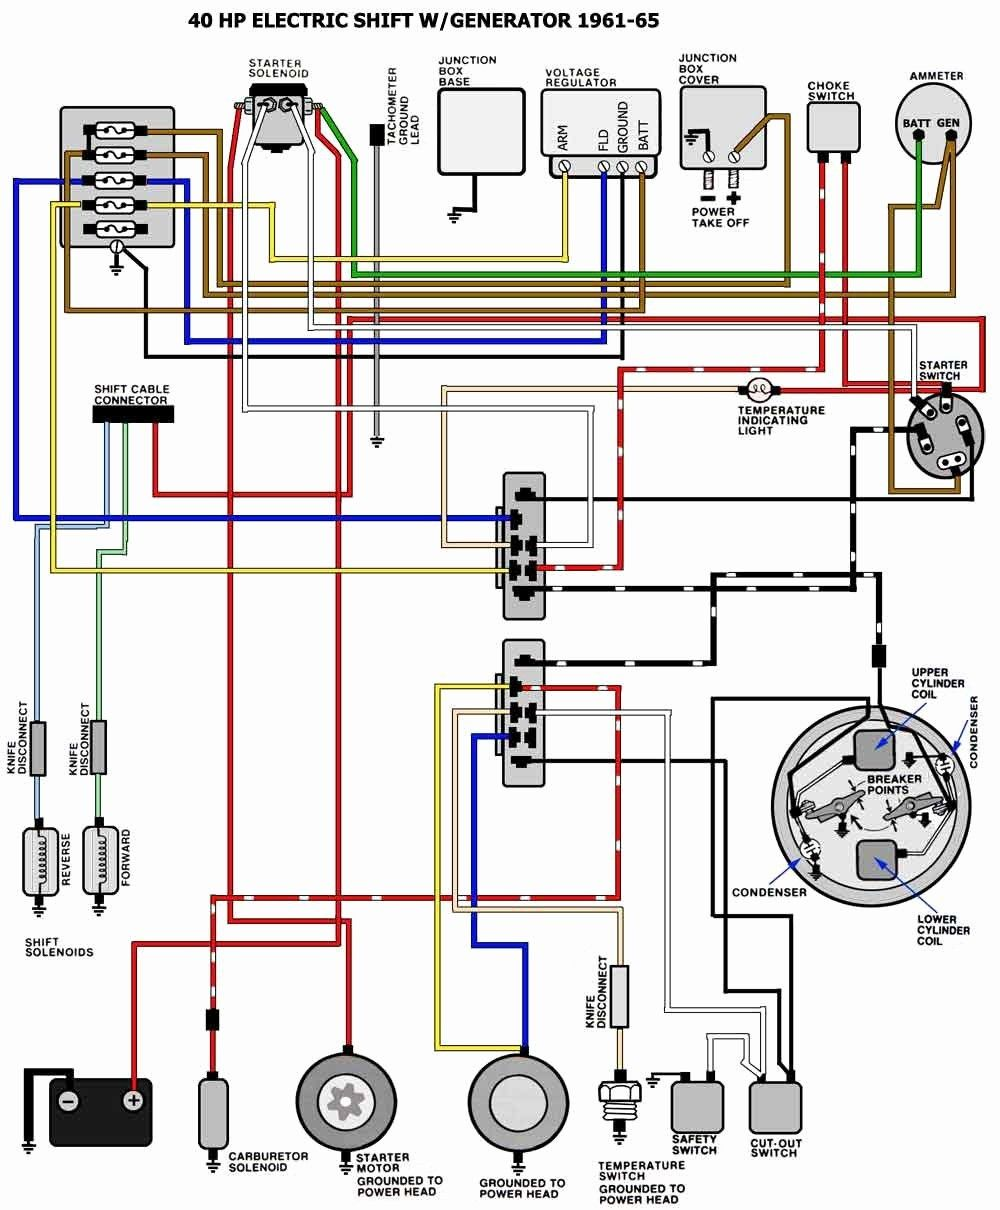 Omc Inboard Outboard Wiring Diagrams